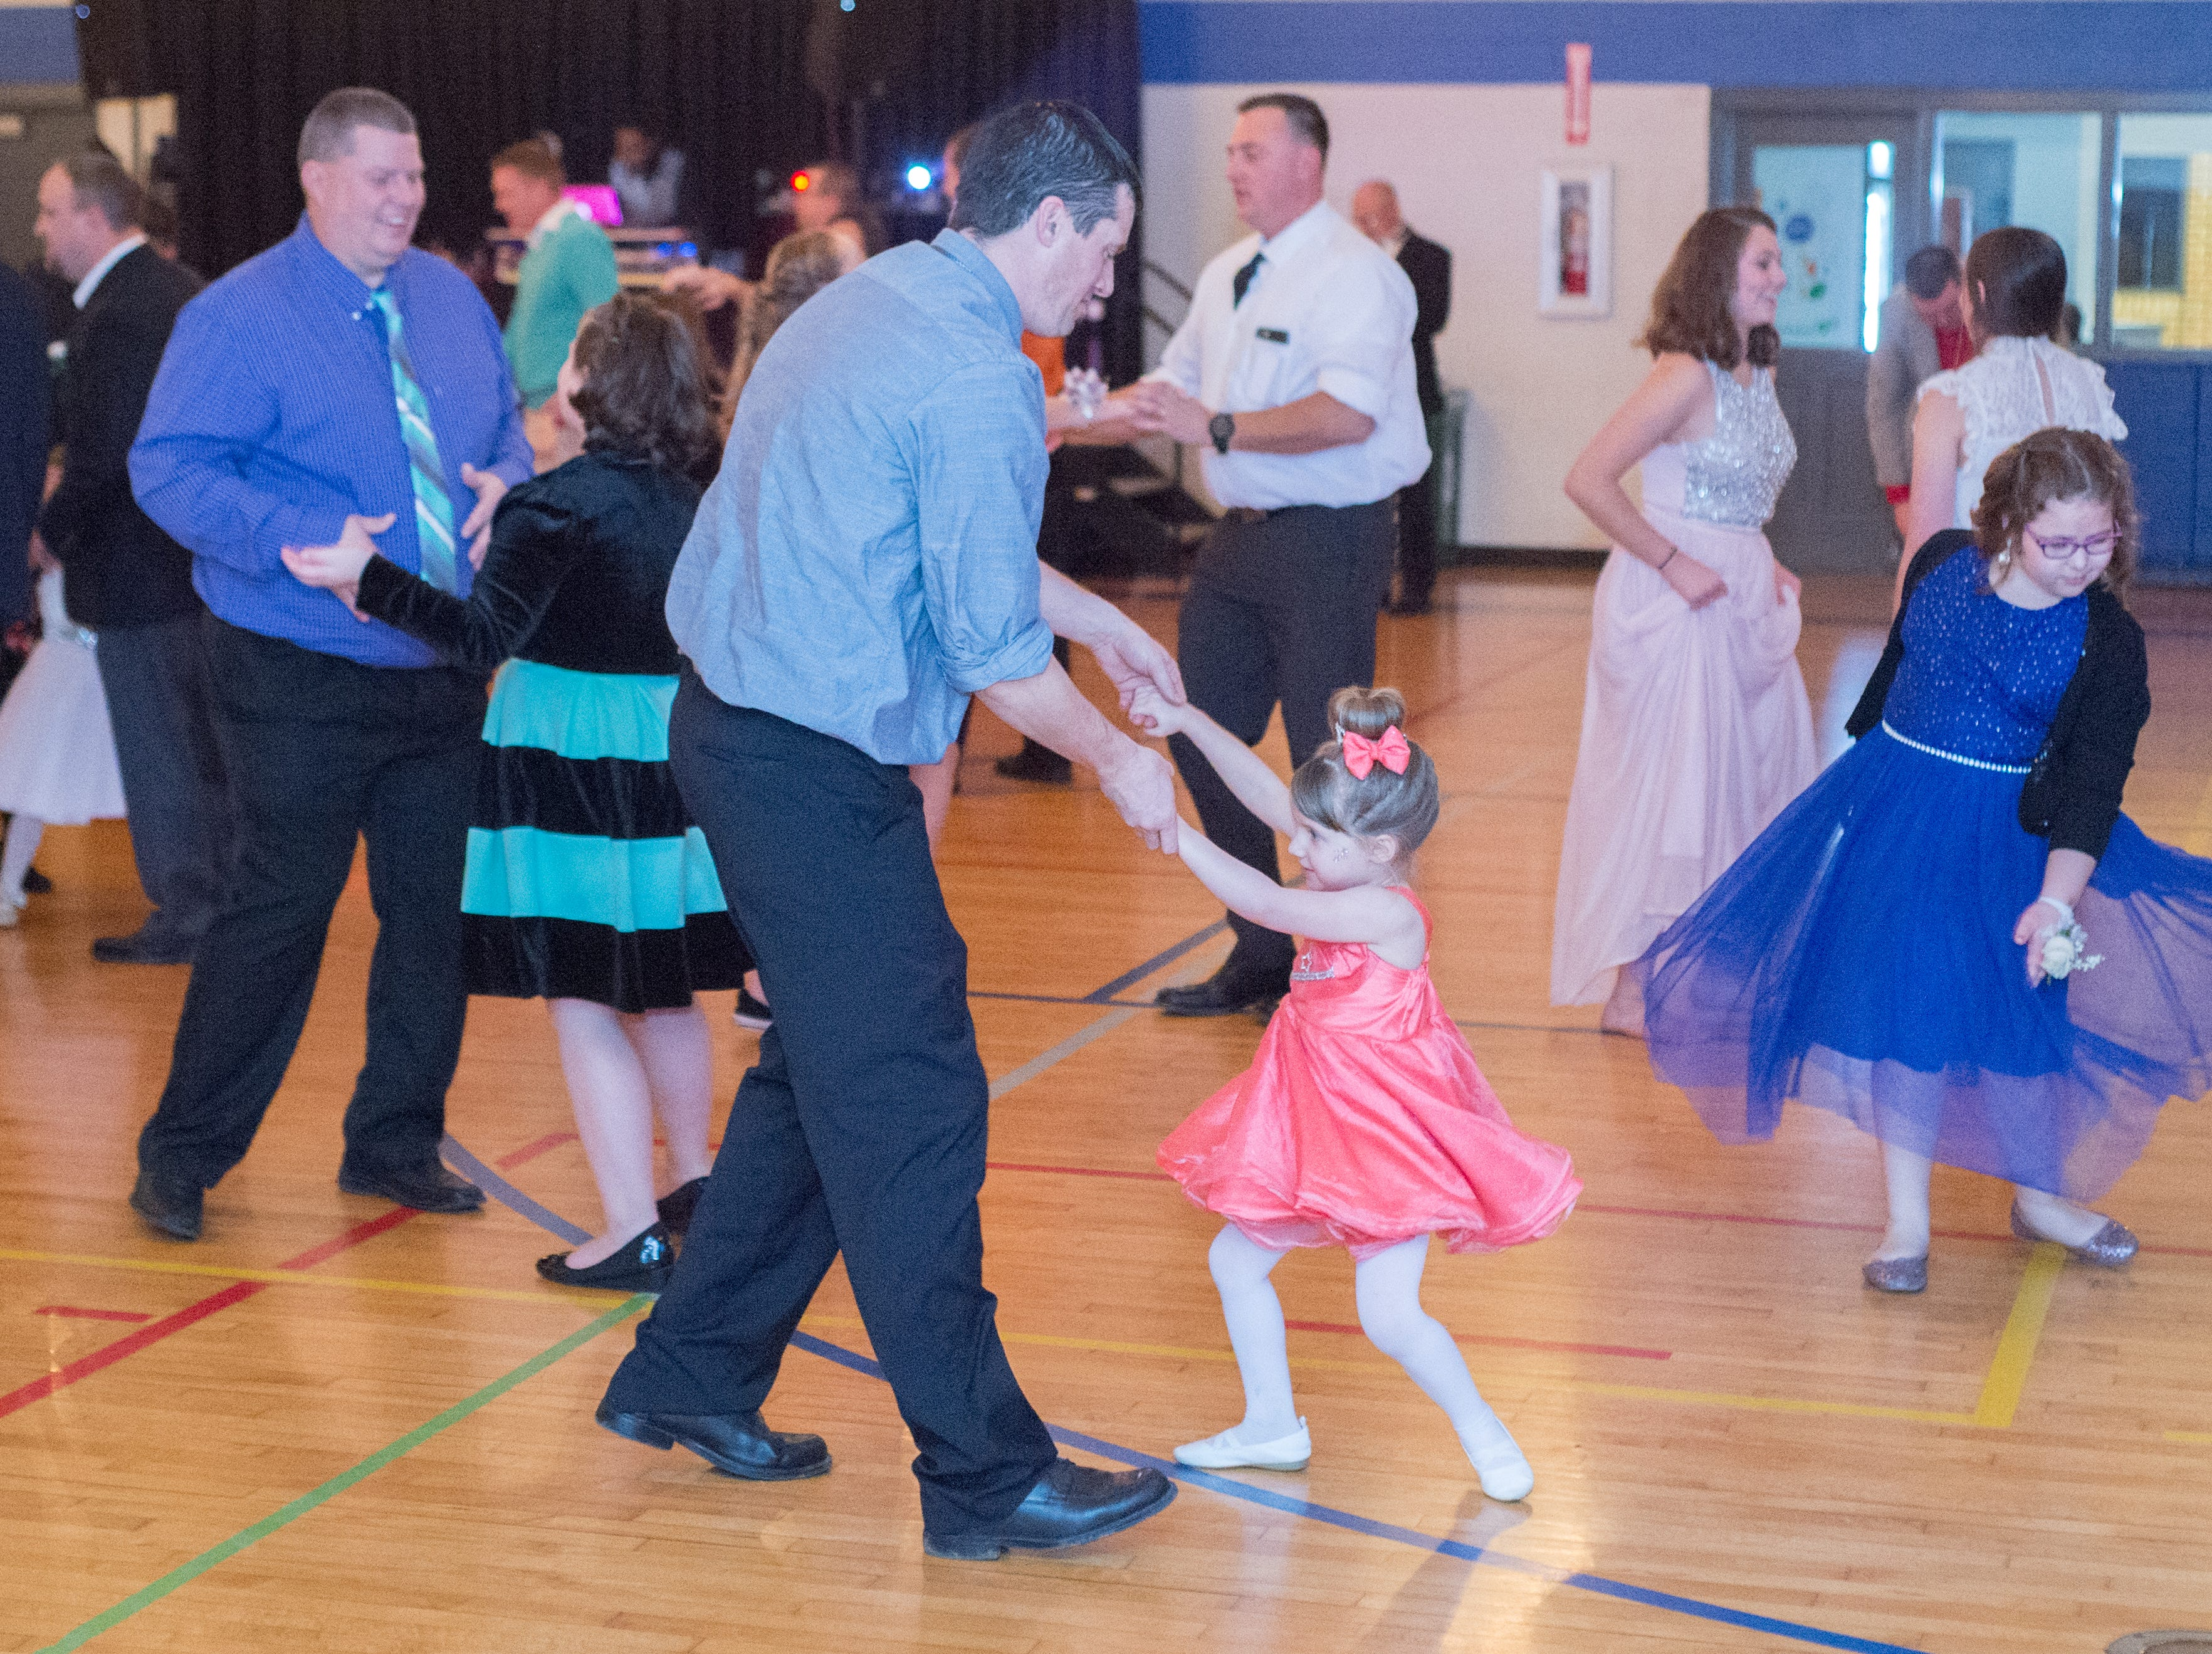 Attendees dance the night away during a Daddy Daughter Dance held at Delmas Long Community Center on Saturday, Feb. 2, 2019.